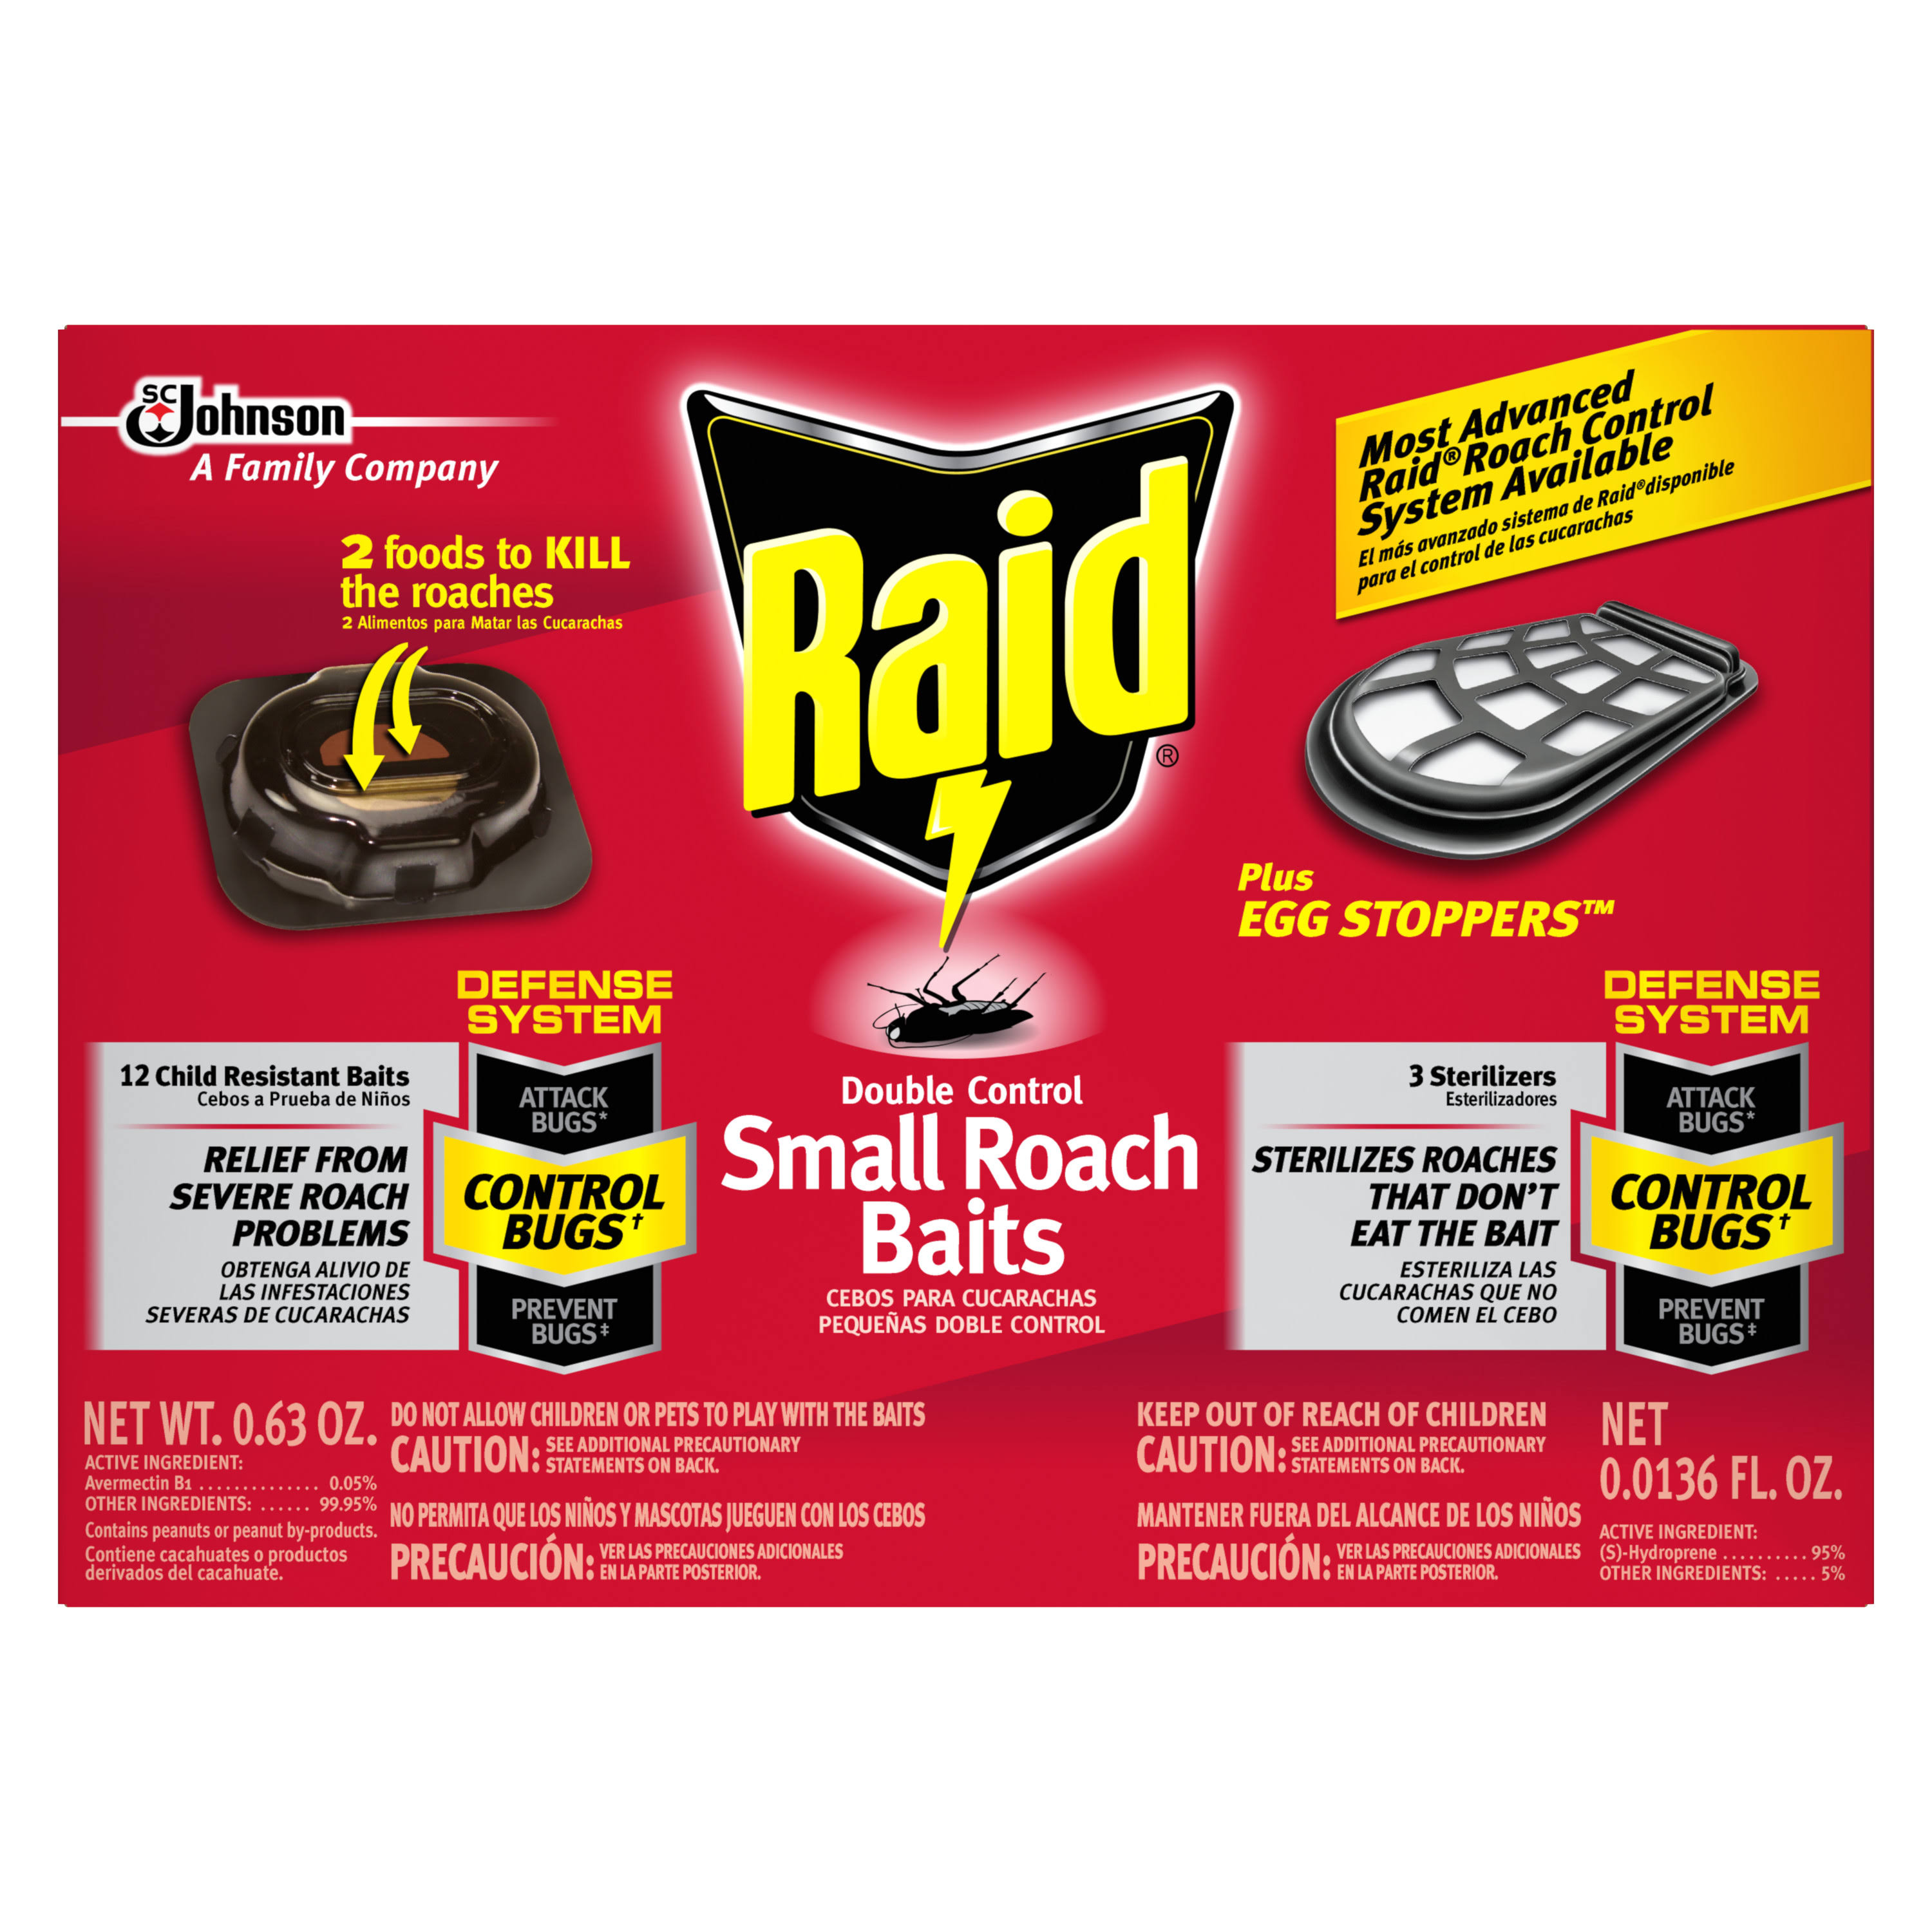 SC Johnson Raid Double Control Small Roach Baits